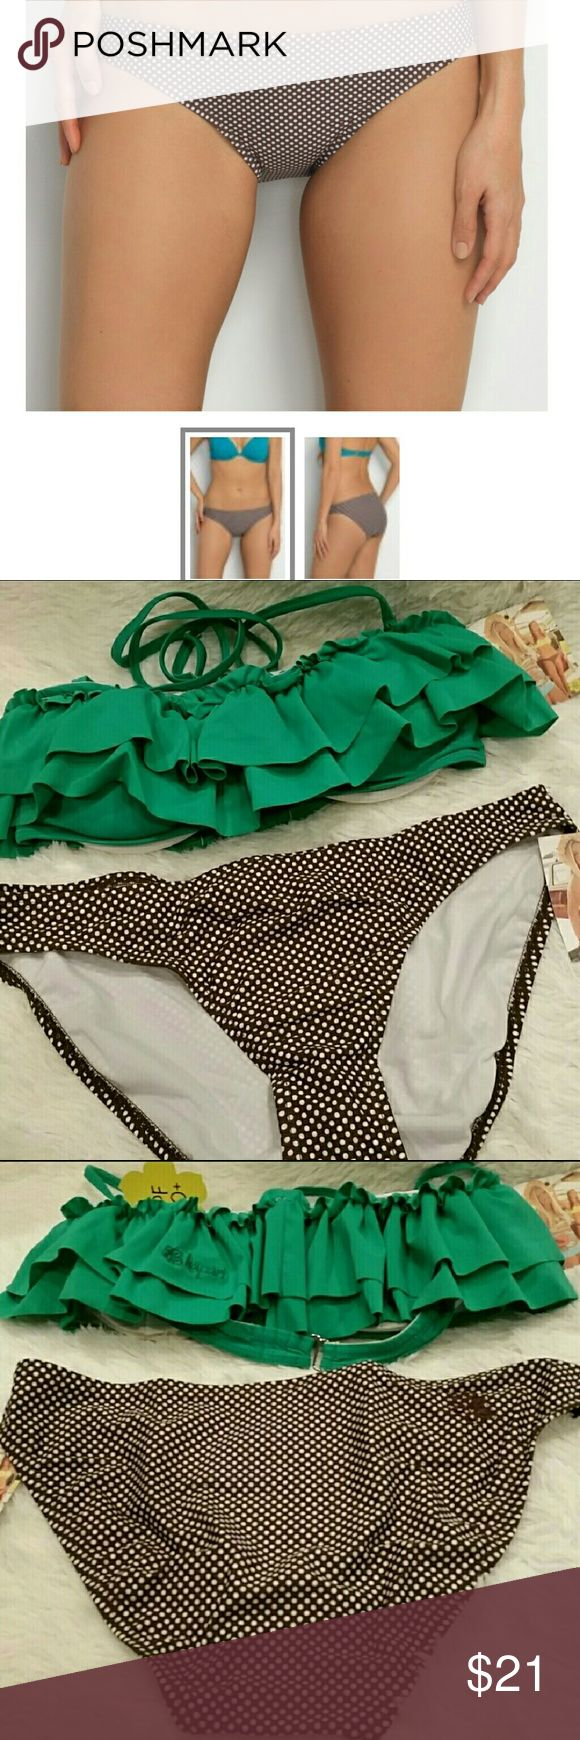 Hapari Regular Bikini Brief Bottoms sz Large Simple, no slip cut promises comfort and style. 80%nylon 20% spandex. Size large (12-14). UPF-50+ Machine or hand wash. MSRP $35. Bundle with the top and side tie bottoms so you can mix and match! Pet friendly home. This listing is for the brown and white polka dot bikini bottoms. Hapari Swim Bikinis